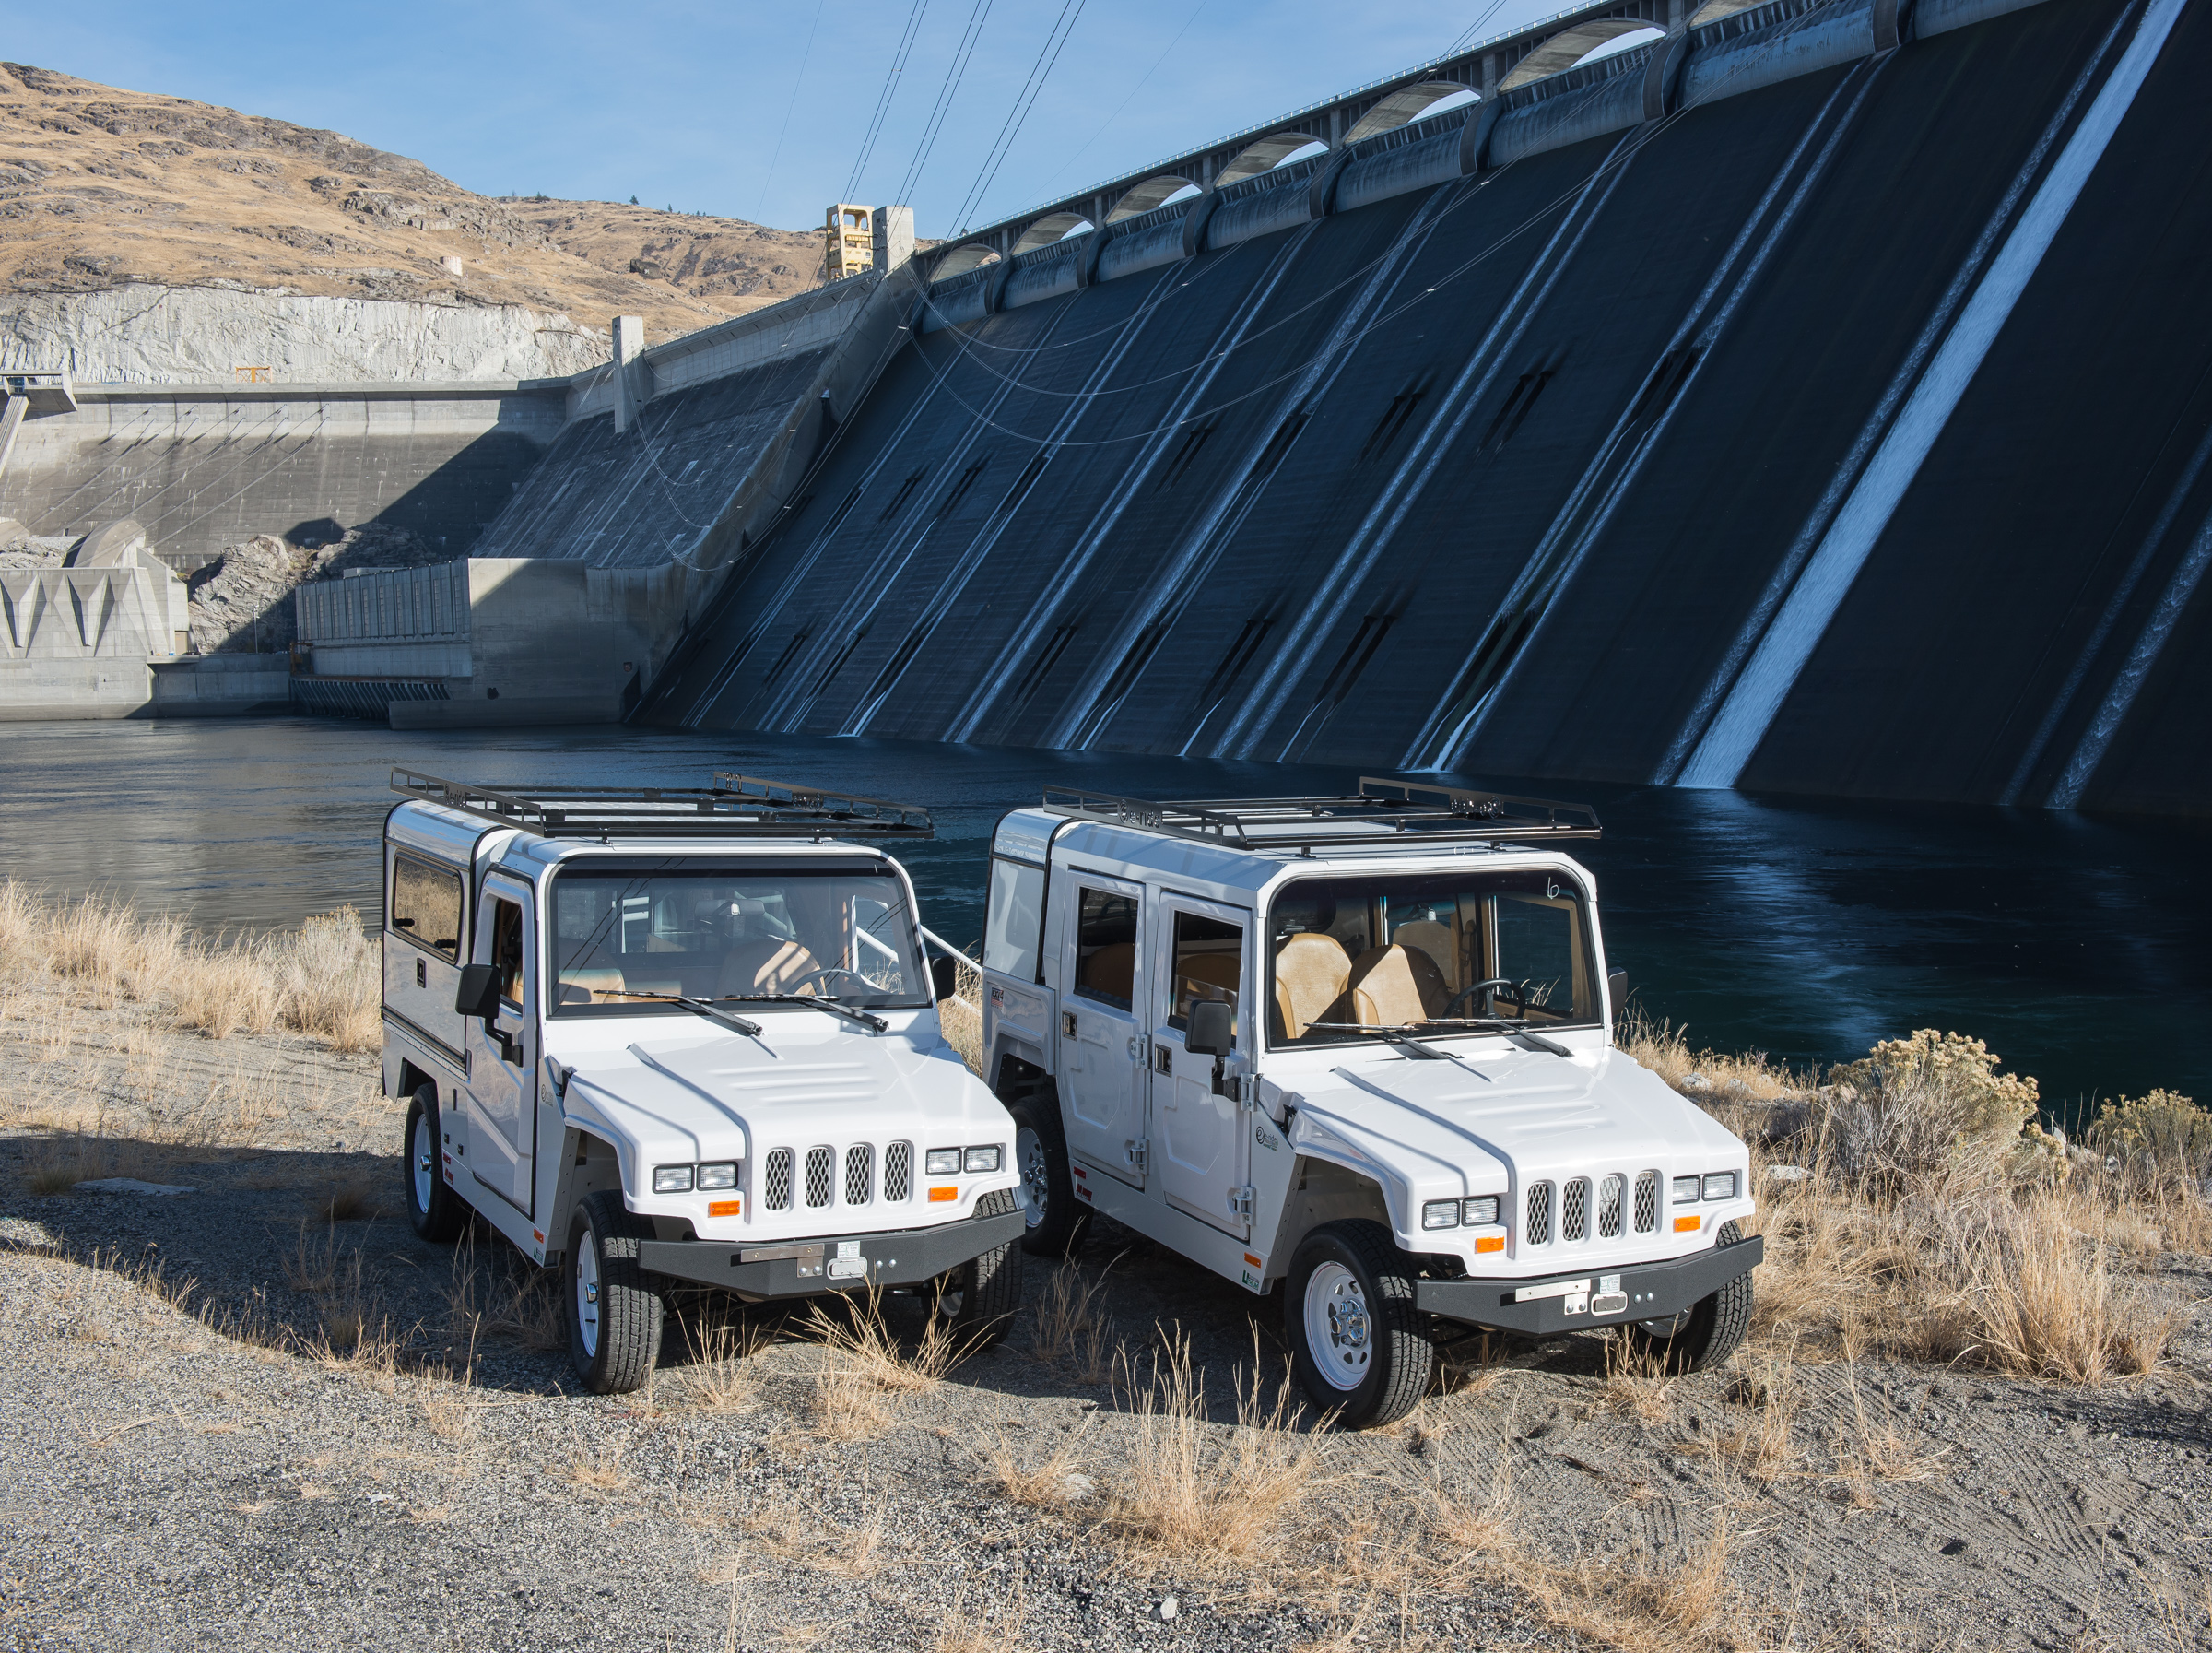 Two models have been purchased for use at Grand Coulee -  EXV4 Patriot - a four passenger commuter; EXV2 Patriot - a two passenger maintenance truck.